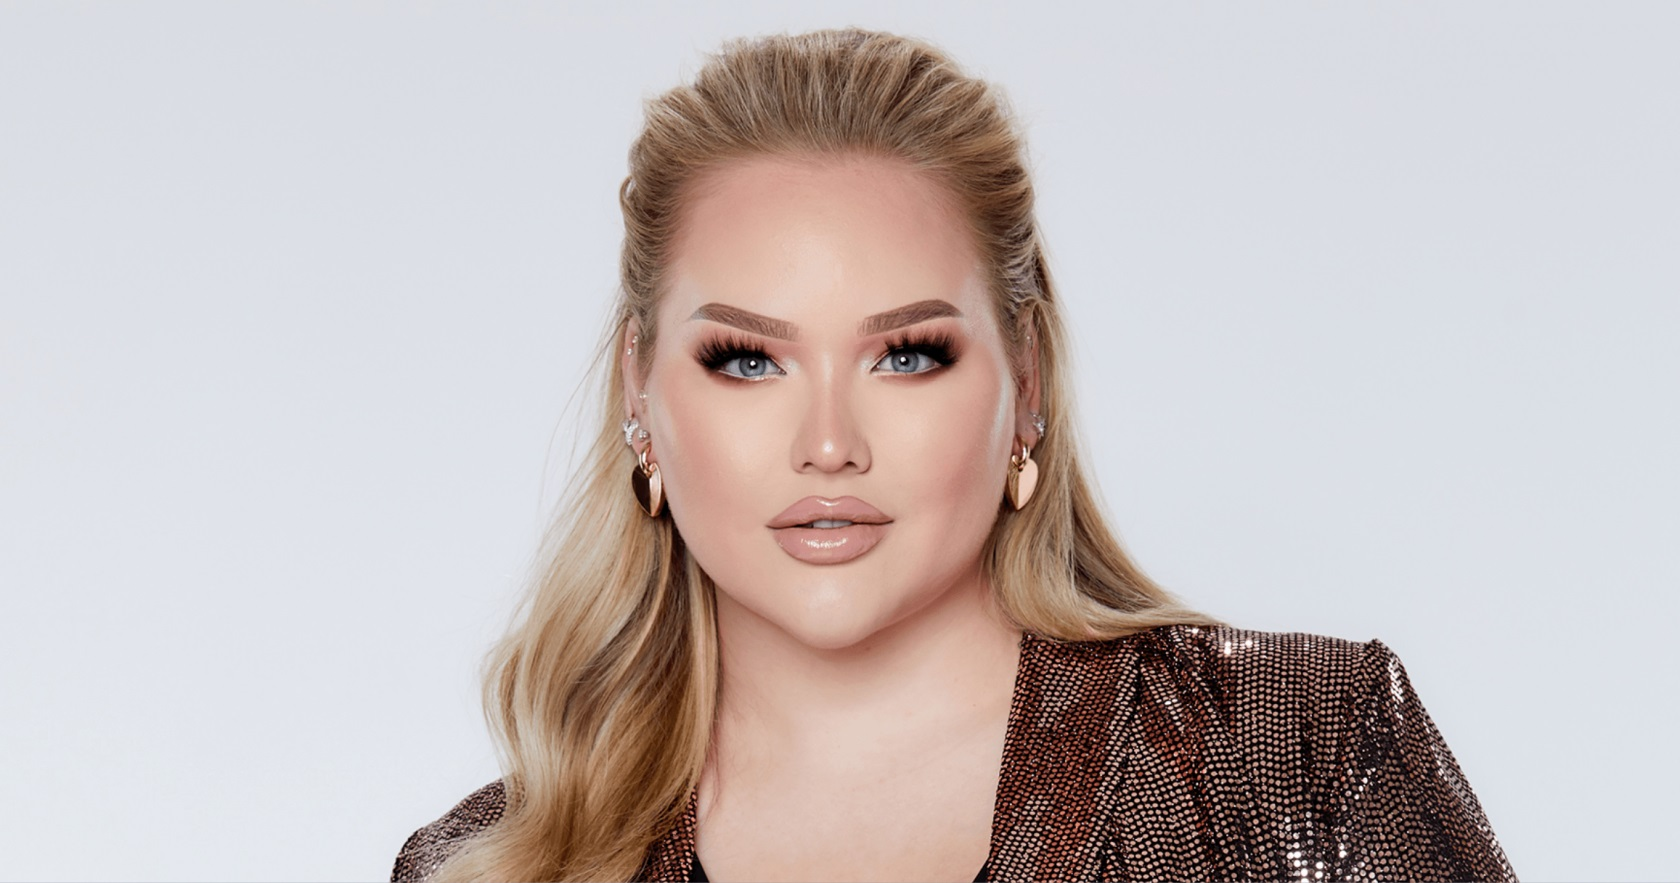 NikkieTutorials, real name Nikkie de Jager, is a presenter for the 2020 Eurovision Song Contest